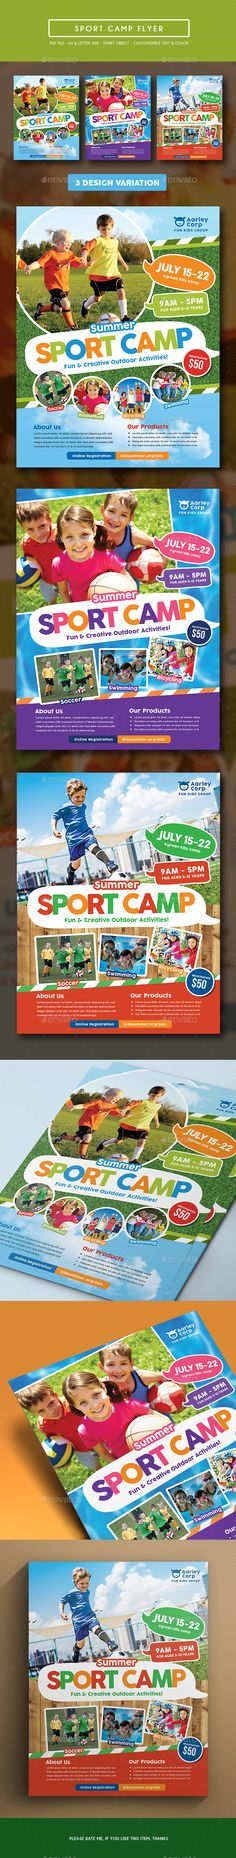 Sport Camp Flyer Template PSD. Download here: http://graphicriver.net/item/sport-camp-flyer/15373514?ref=ksioks